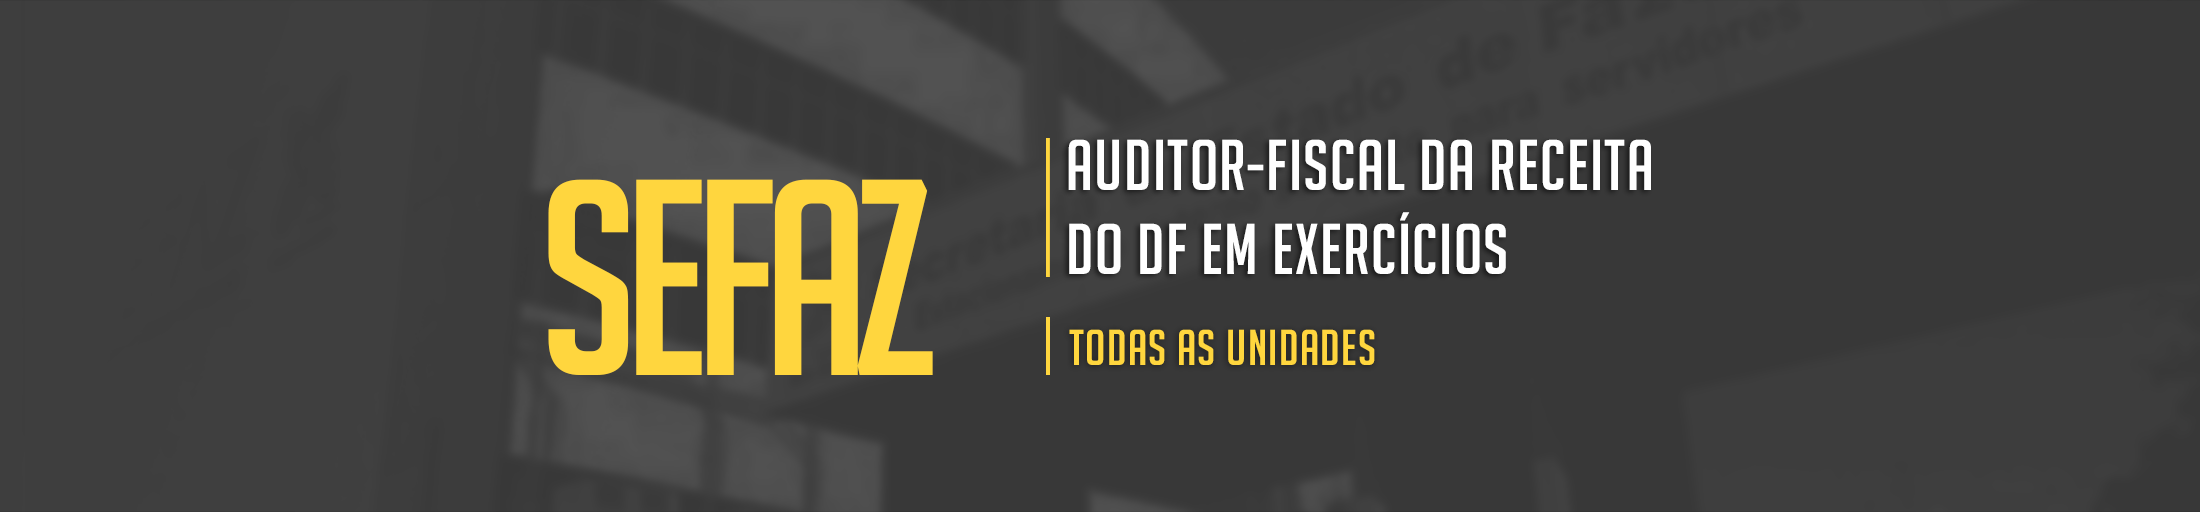 SEFAZ_-_AUDITOR_FISCAL-1